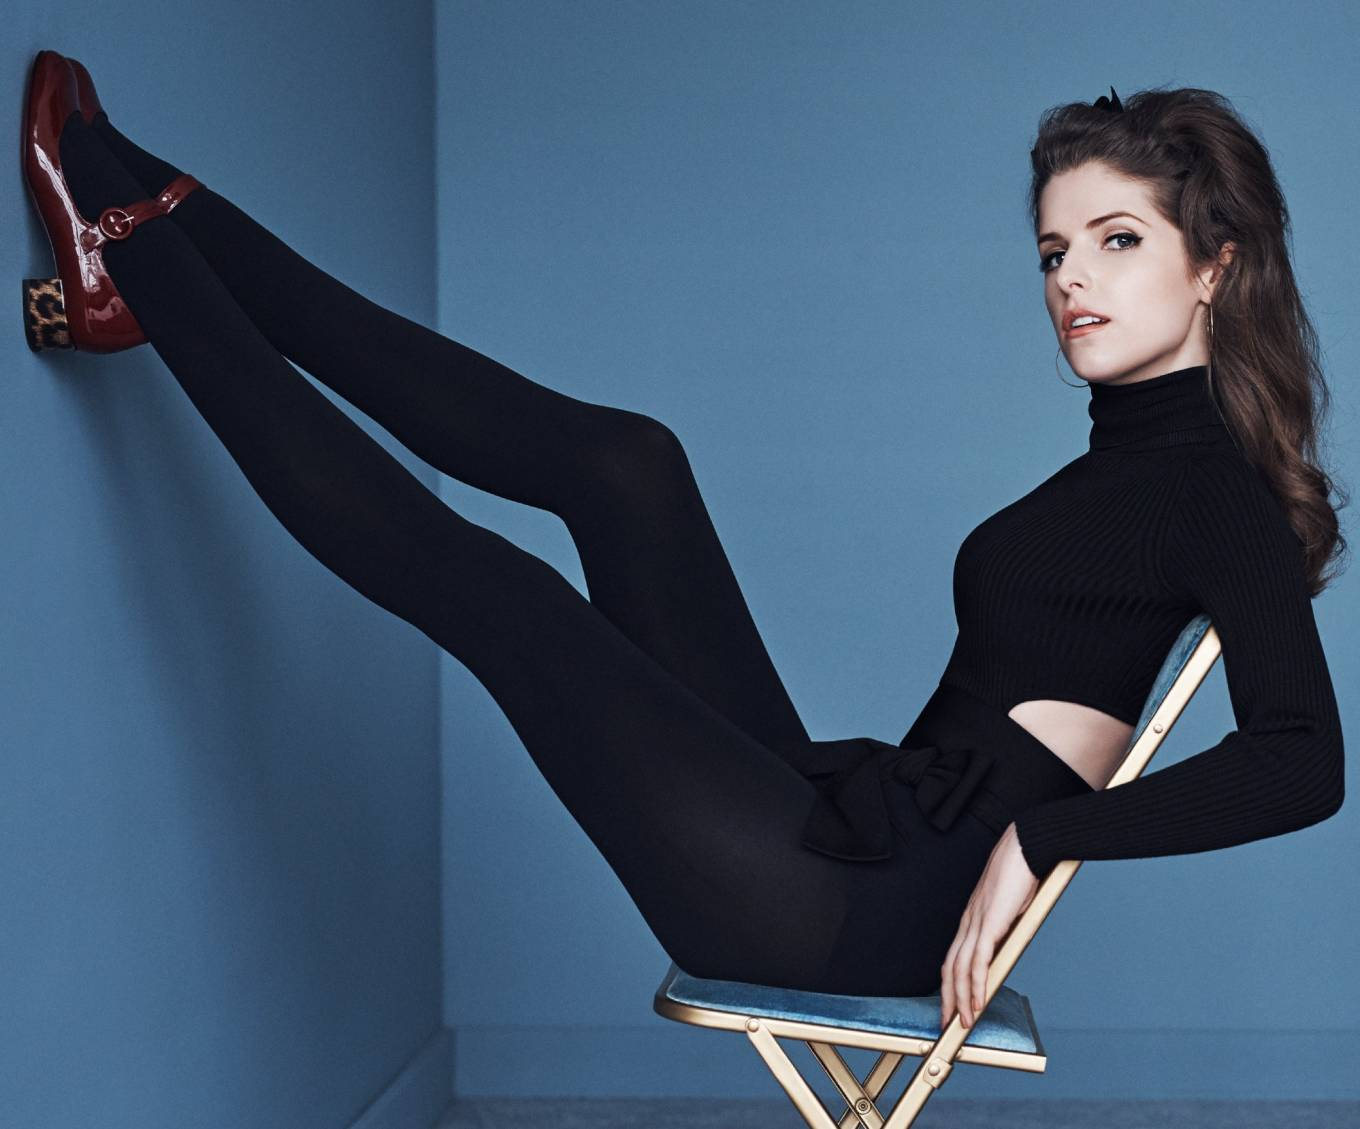 Anna Kendrick - The Sun-Herald Sunday Life (May 2020) Adds